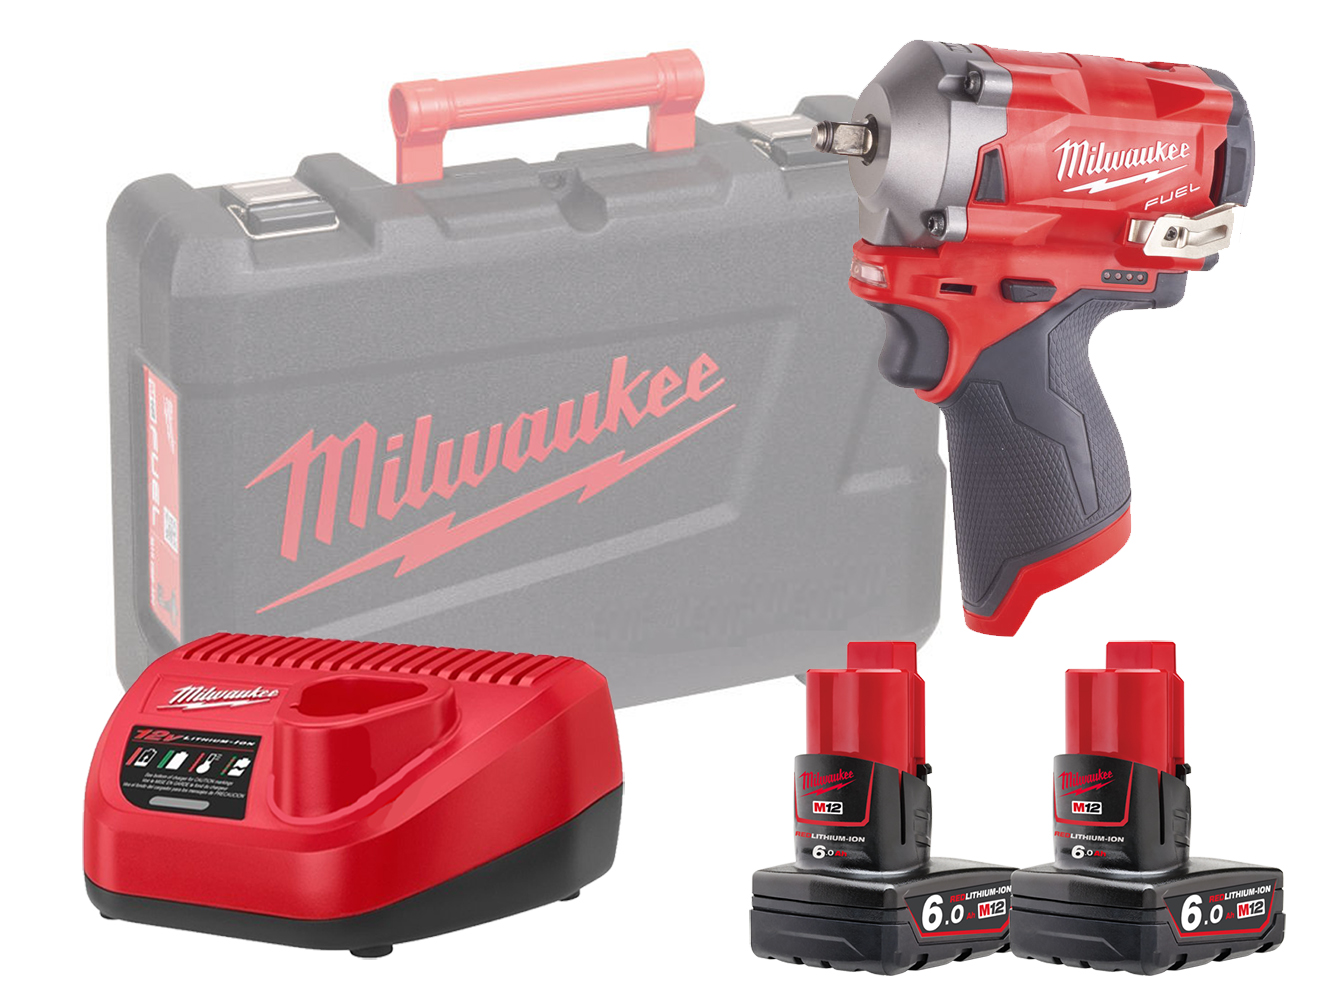 Milwaukee M12FIW38 12V Fuel Compact Impact Wrench 3/8In - 6.0Ah Pack